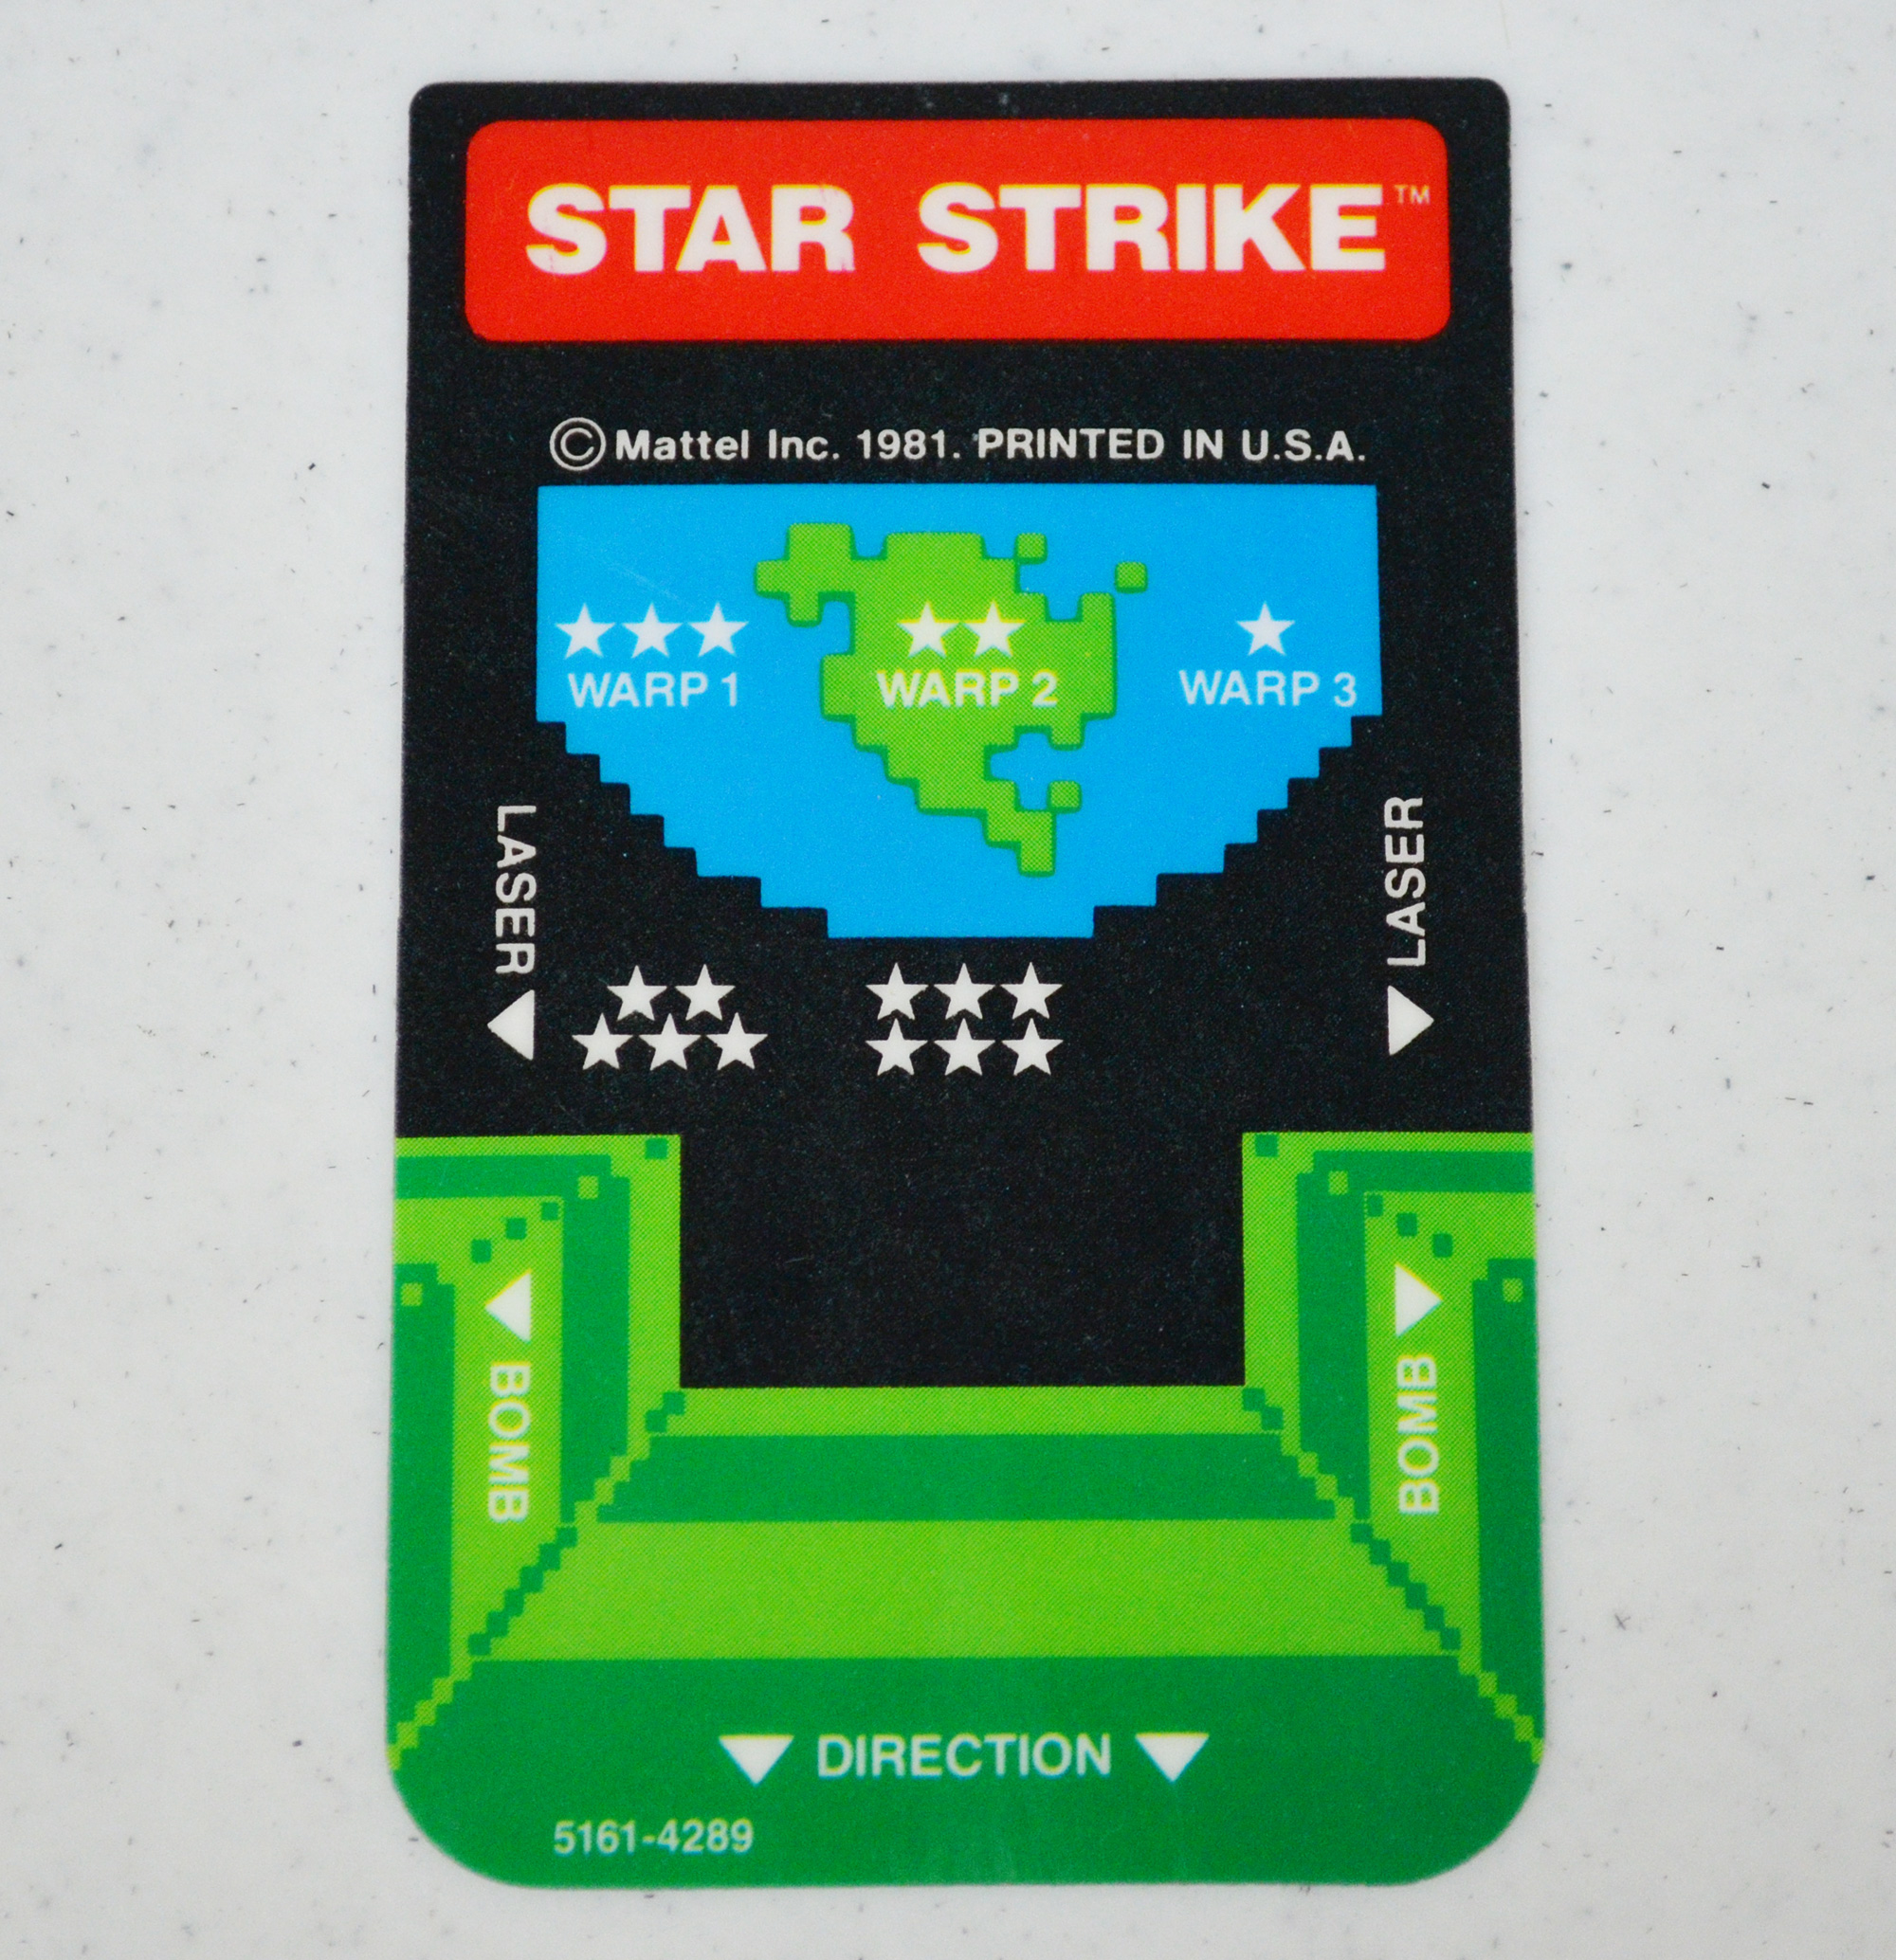 Rickster8: Star Strike: Level 1 [Button 3] (Intellivision Emulated) 7,690 points on 2020-09-21 20:54:43